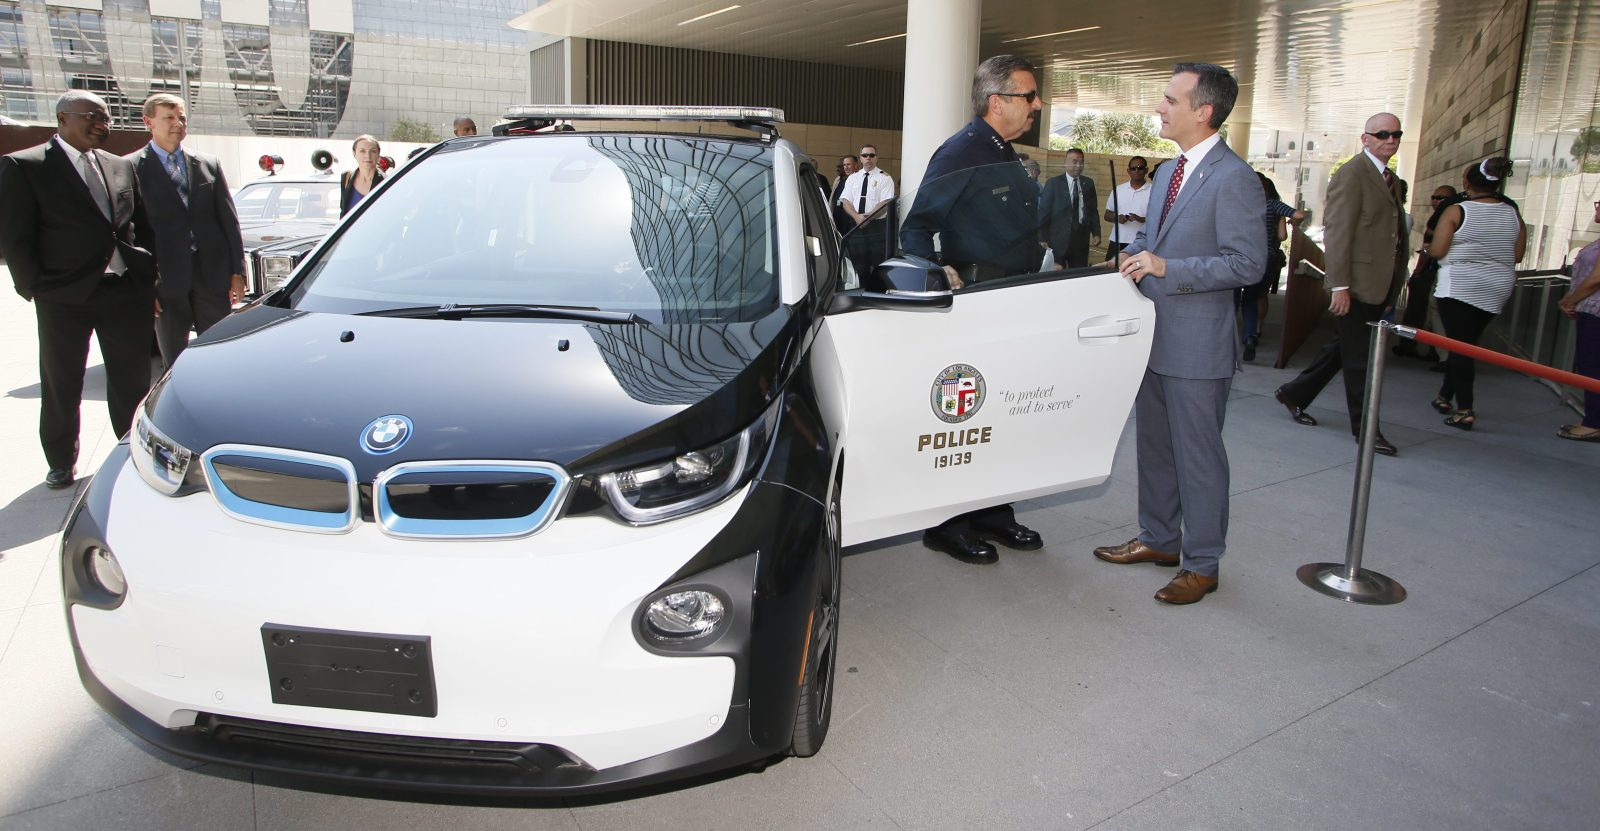 Lapd Is Apparently Barely Using Its Large Fleet Of Bmw I3 Electric